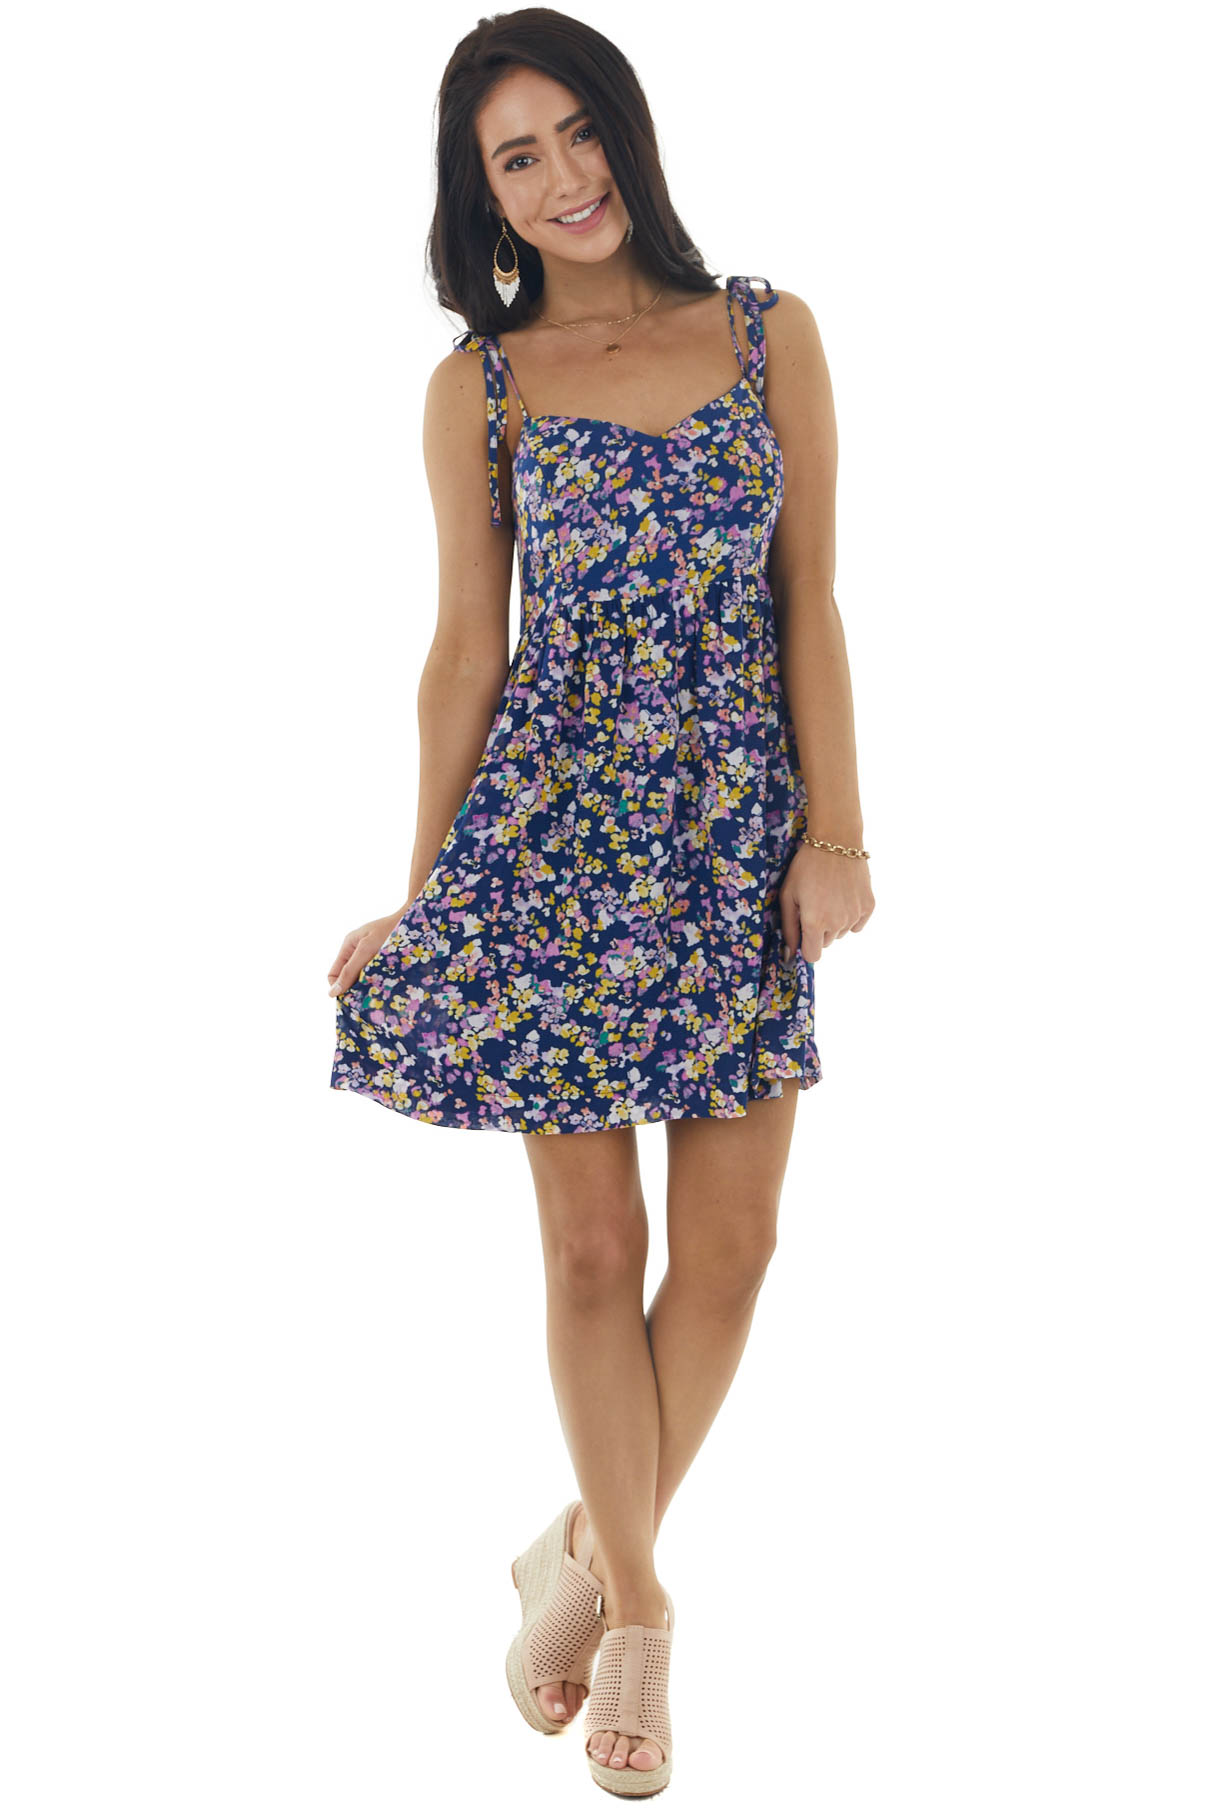 Navy and Floral Print Woven Skater Dress with Tie Straps